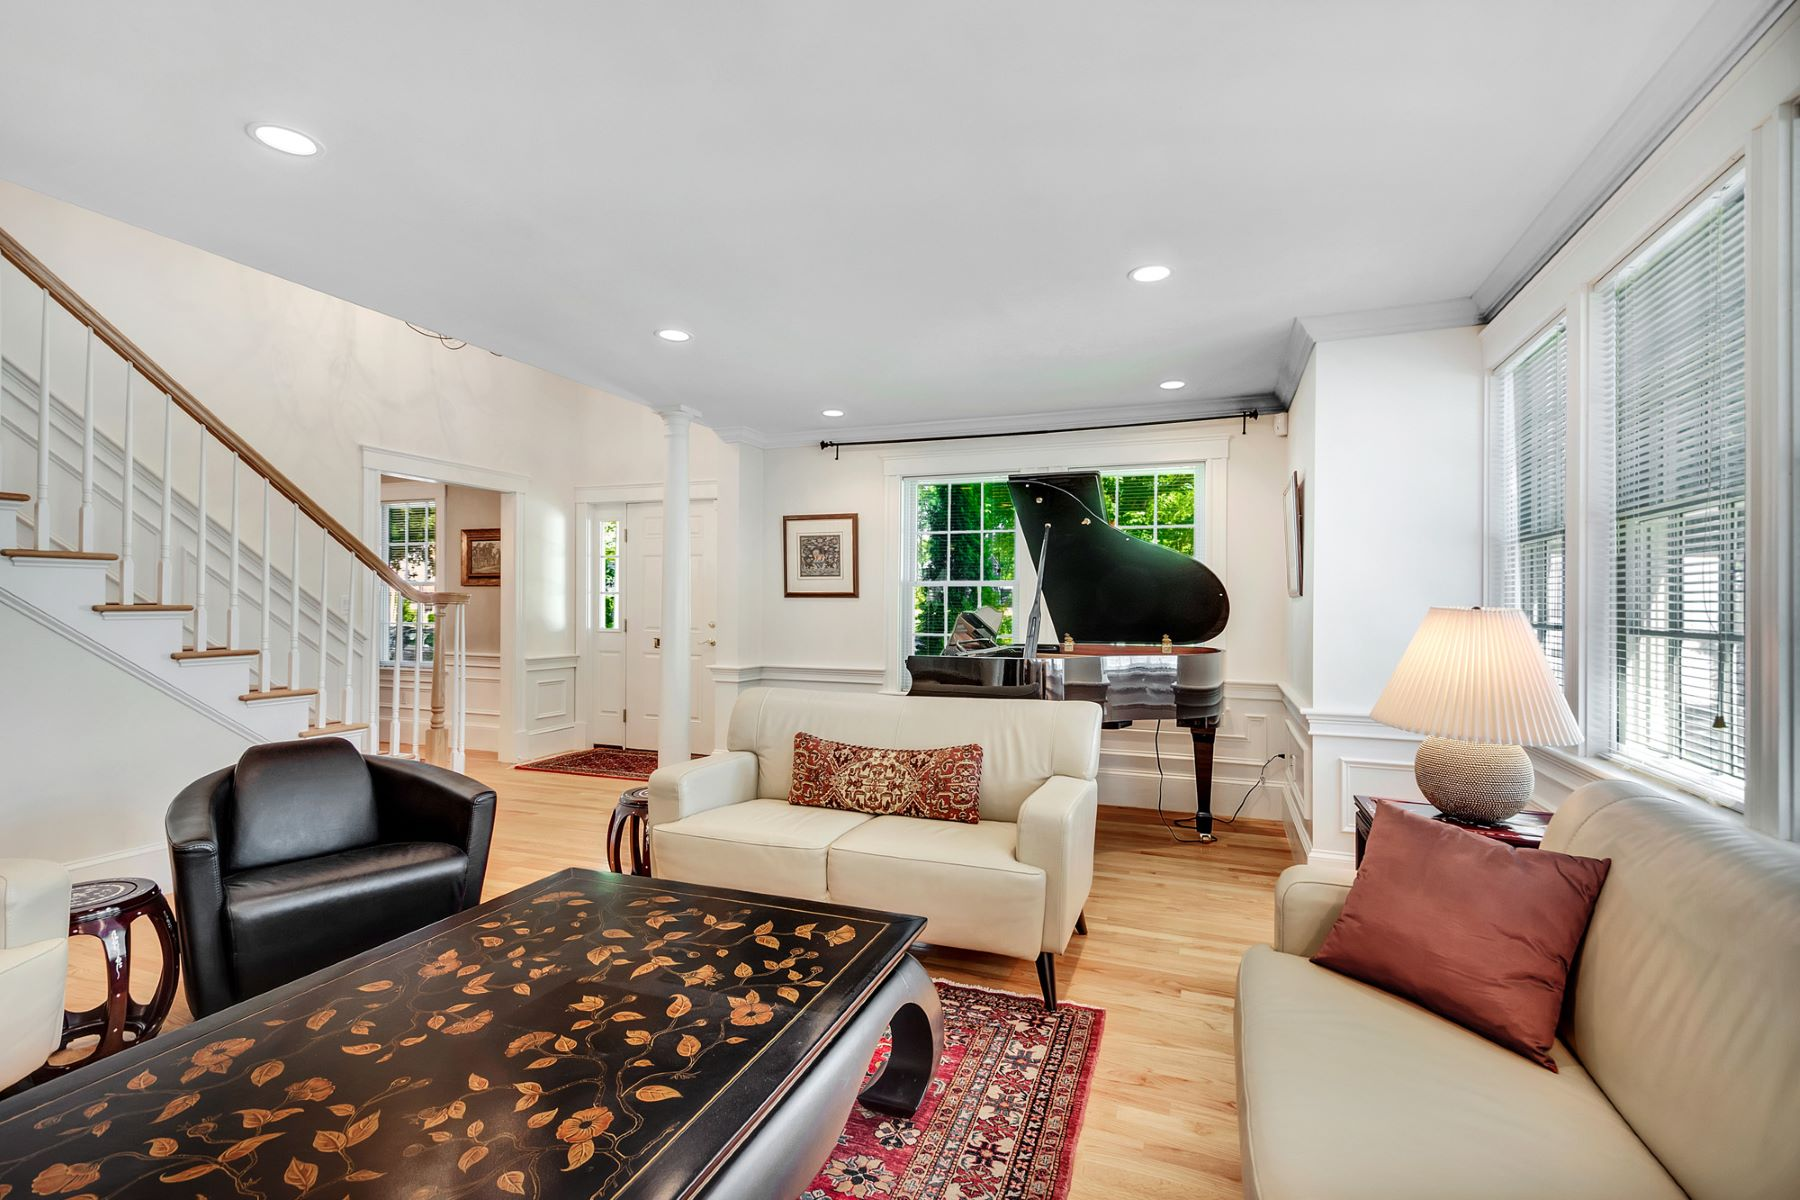 Additional photo for property listing at 44 Parker Avenue, Newton  Newton, Massachusetts 02459 United States